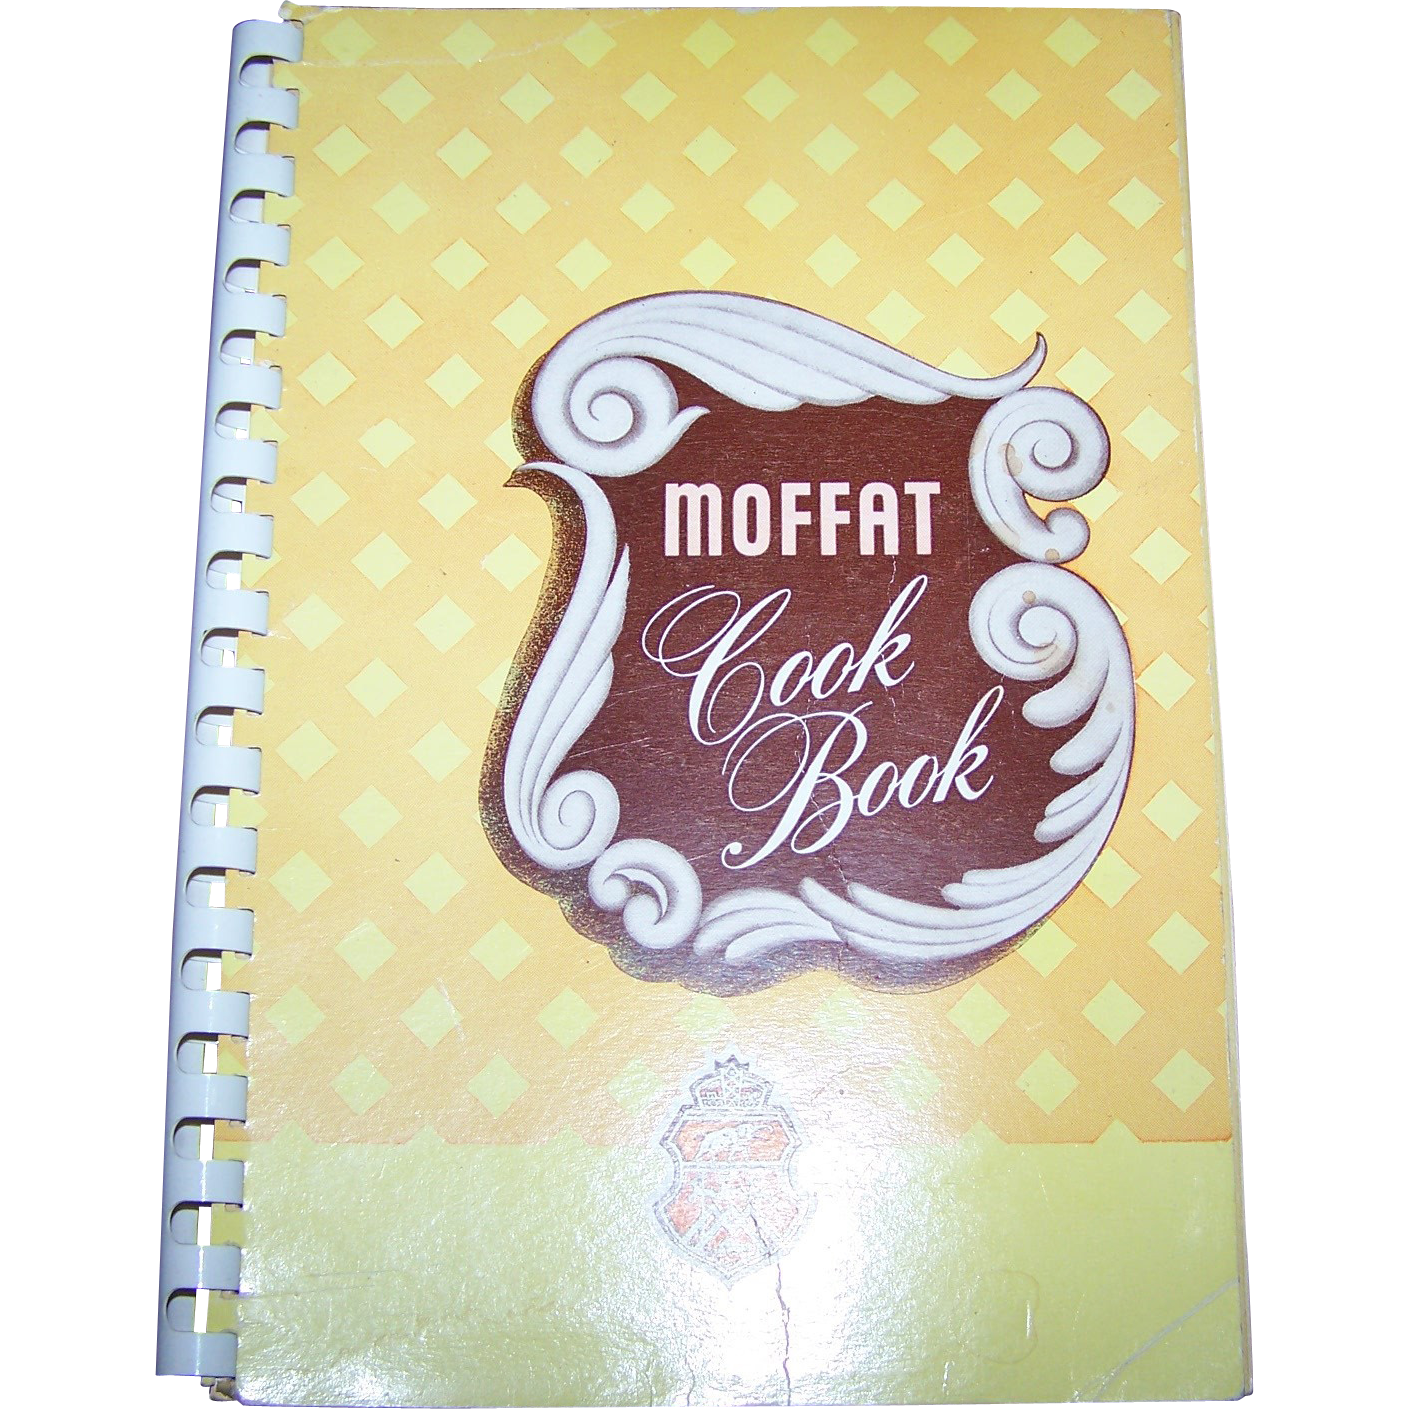 Vintage Advertising Cook Book Moffat Cook Book Weston Ontario Canada